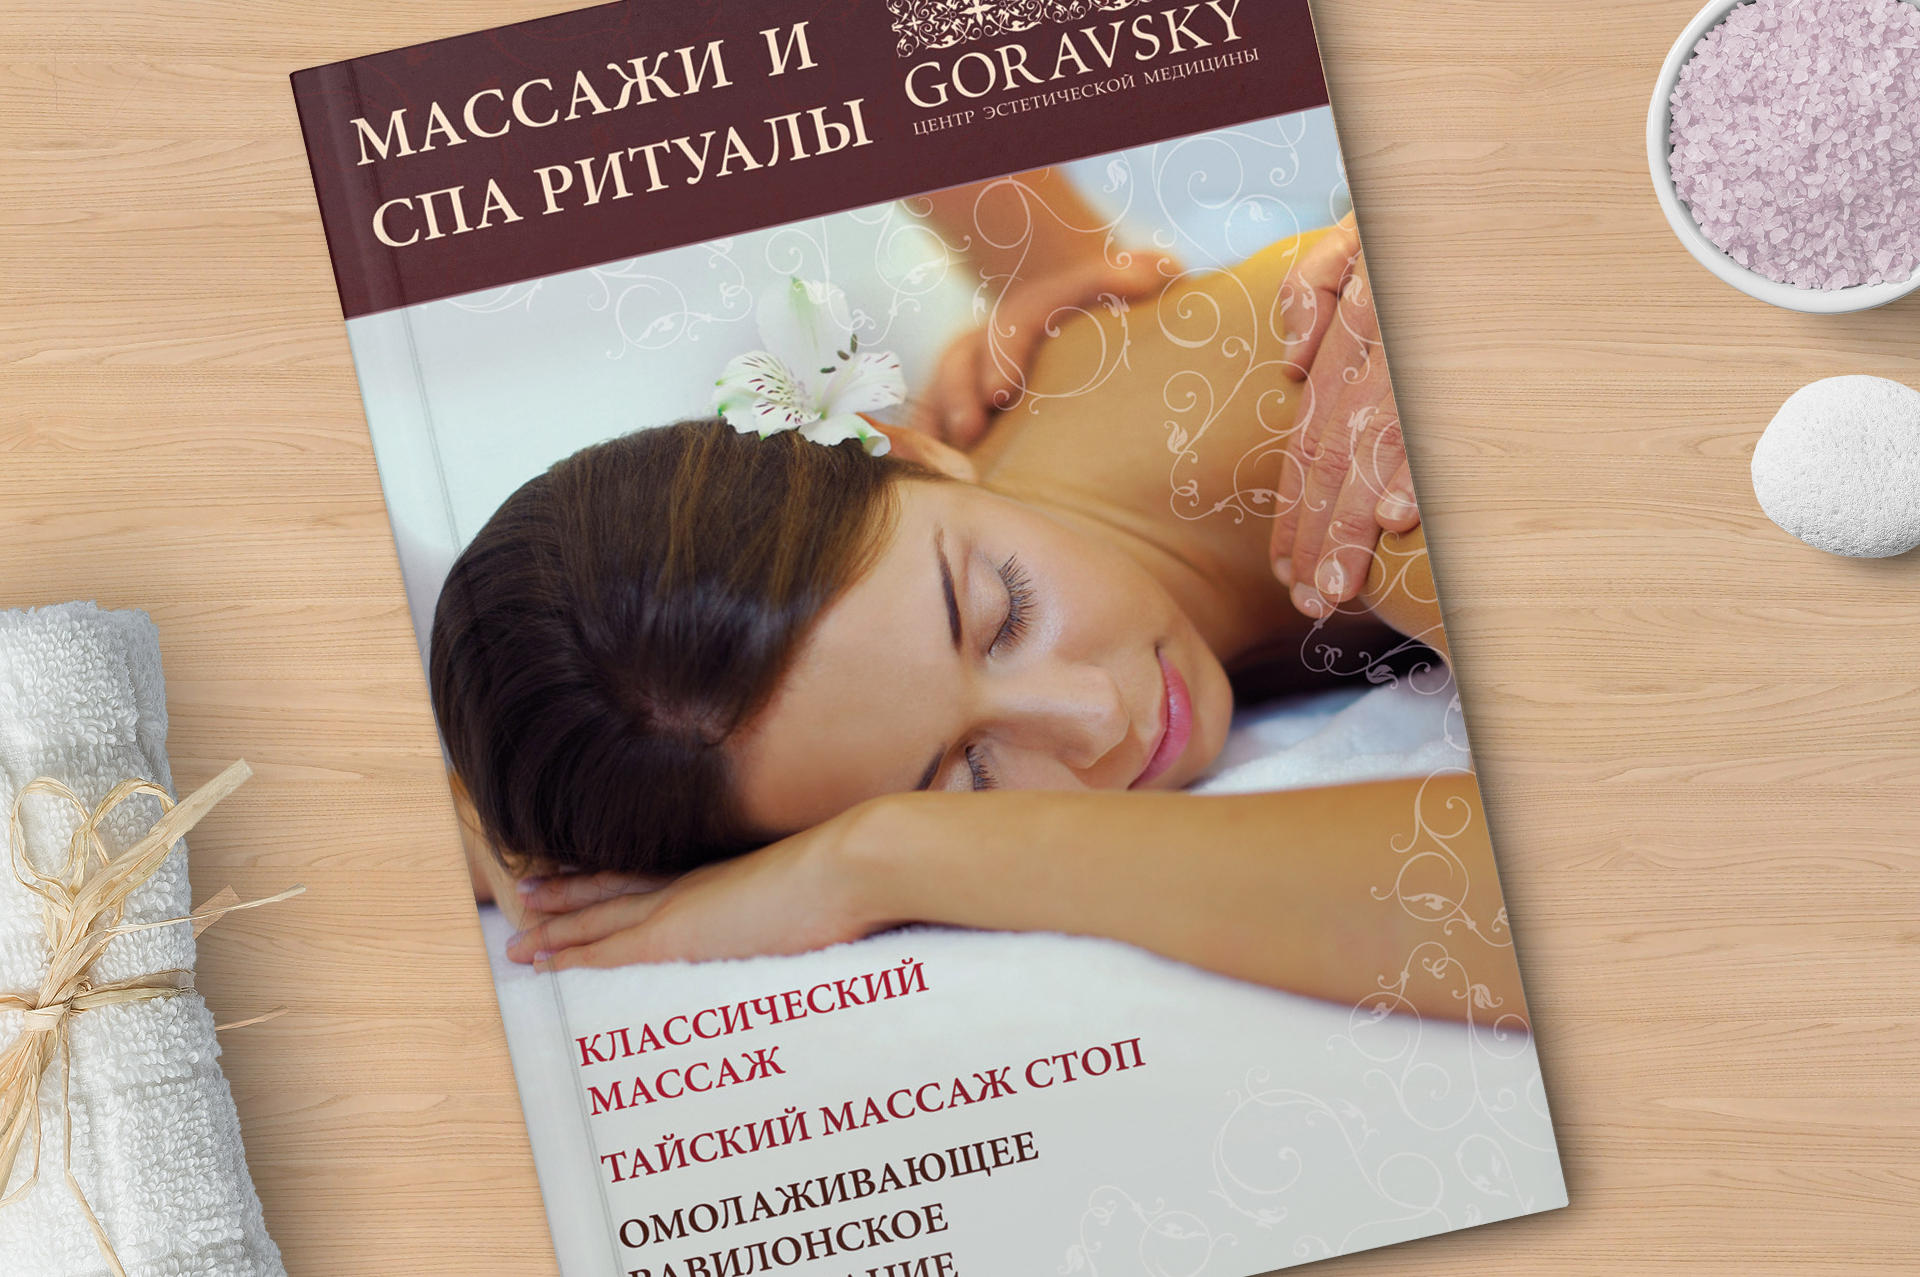 Дизайн журнала of the medical center, Medical center magazine design